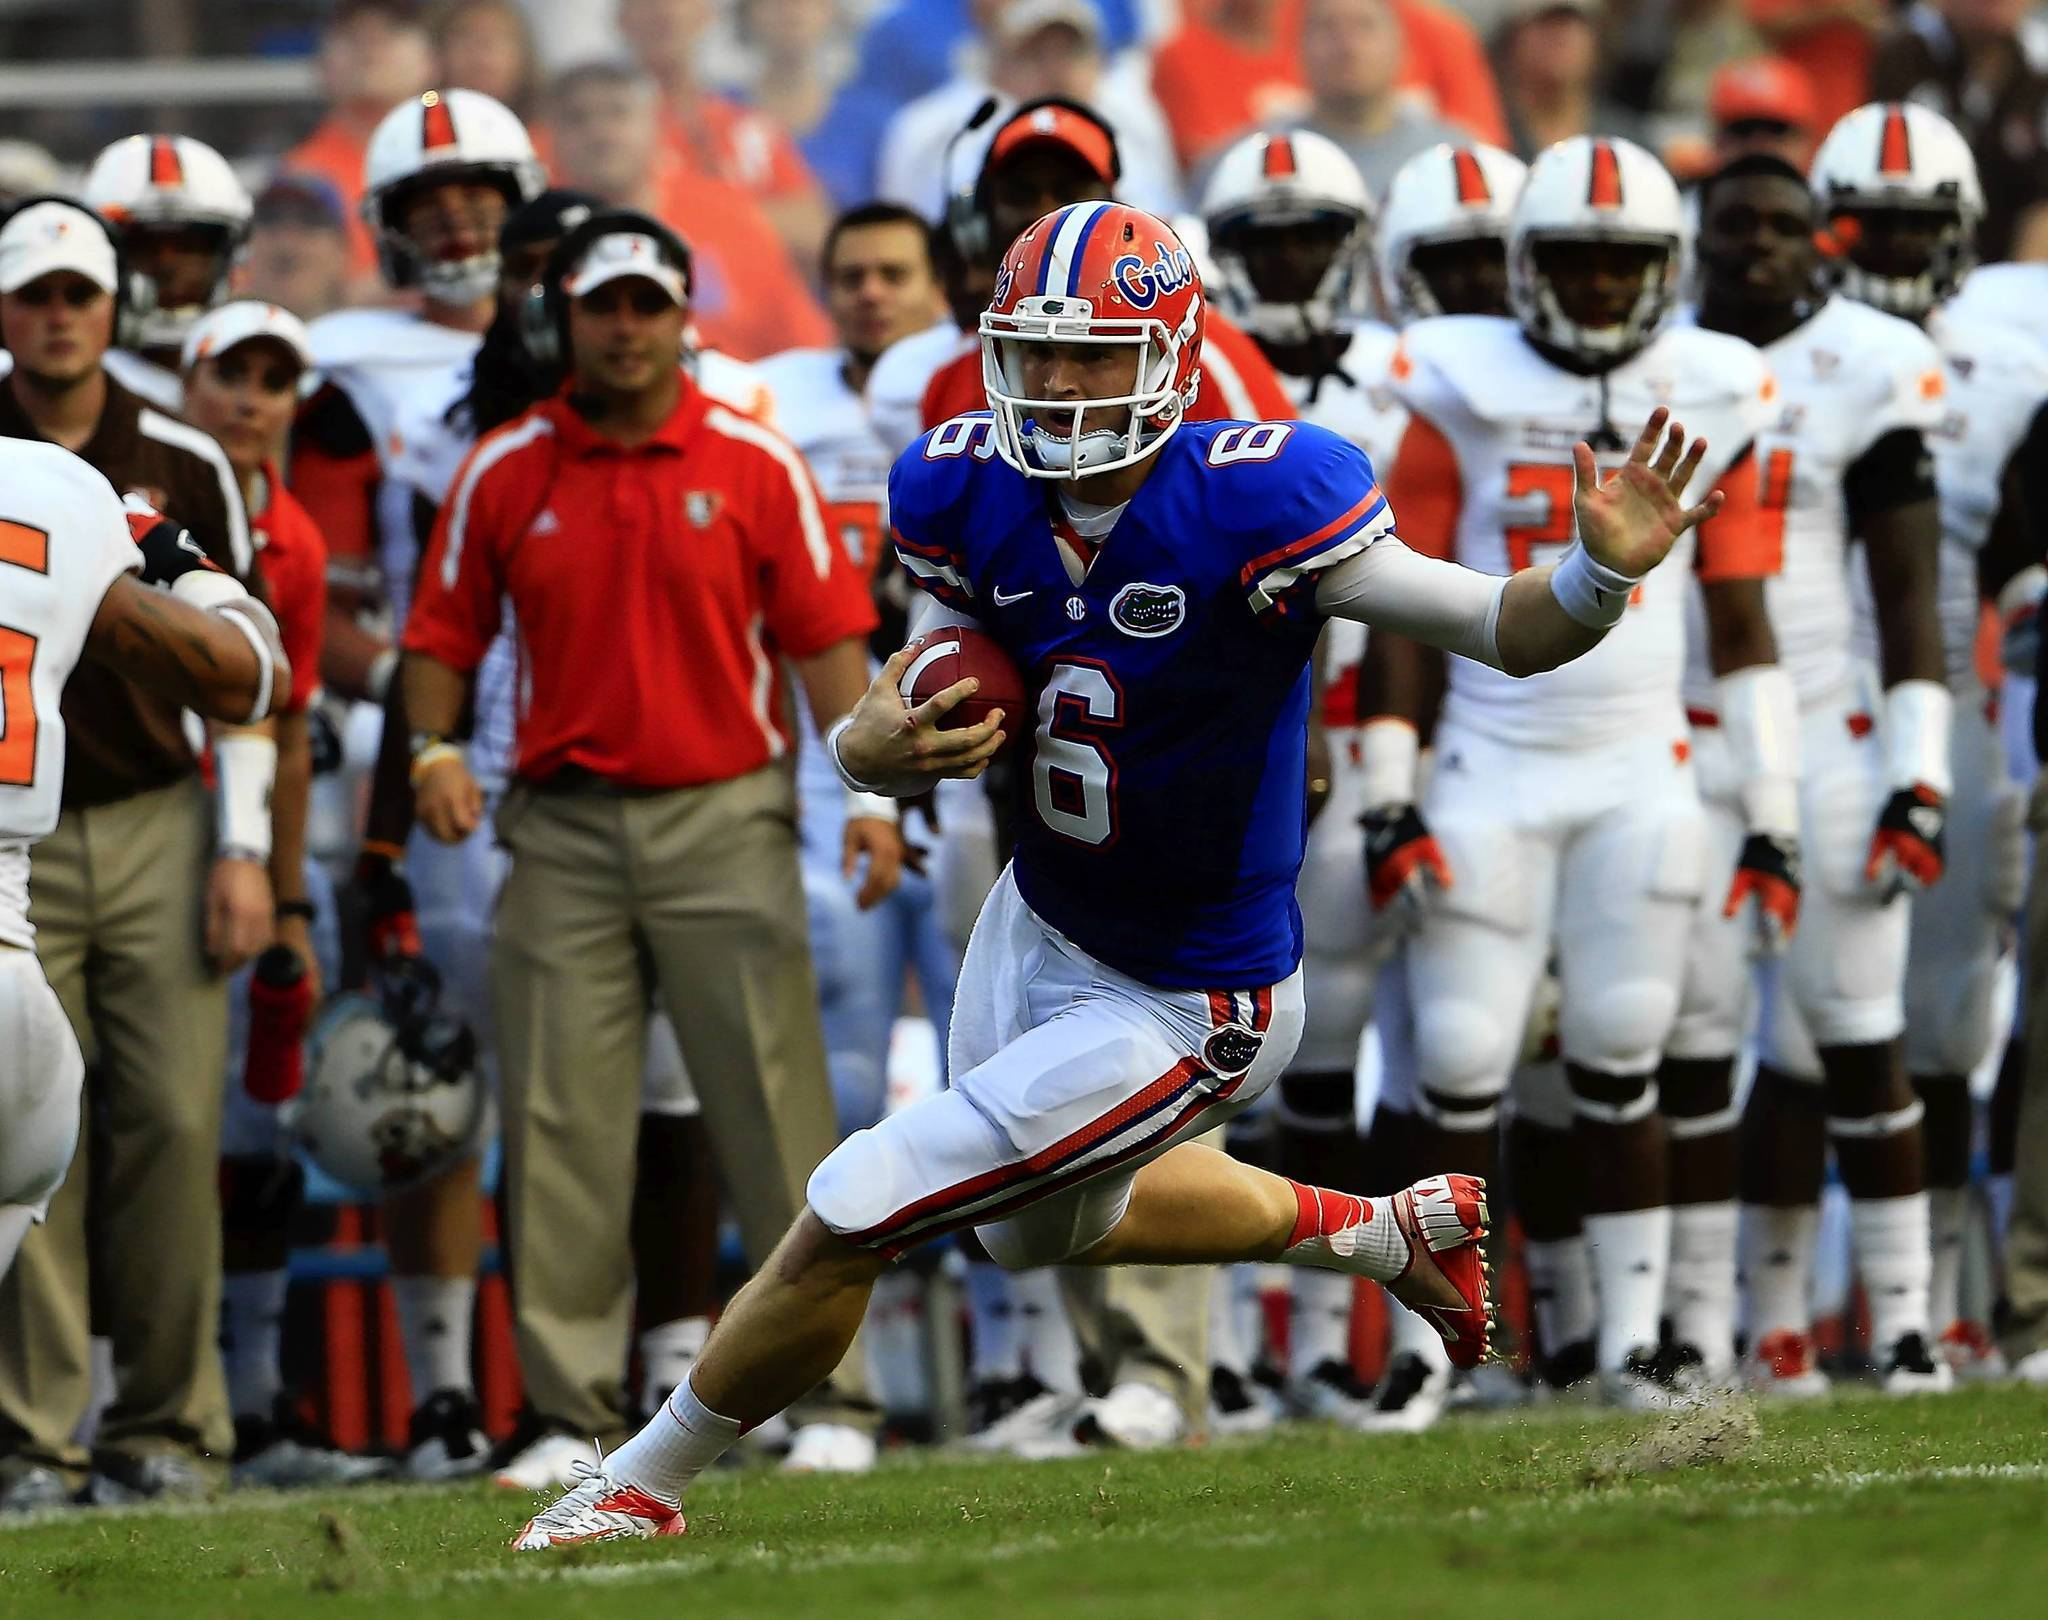 Jeff Driskel of the Florida Gators scrambles for yardage against the Bowling Green Falcons at Ben Hill Griffin Stadium on September 1, 2012, in Gainesville, Florida.